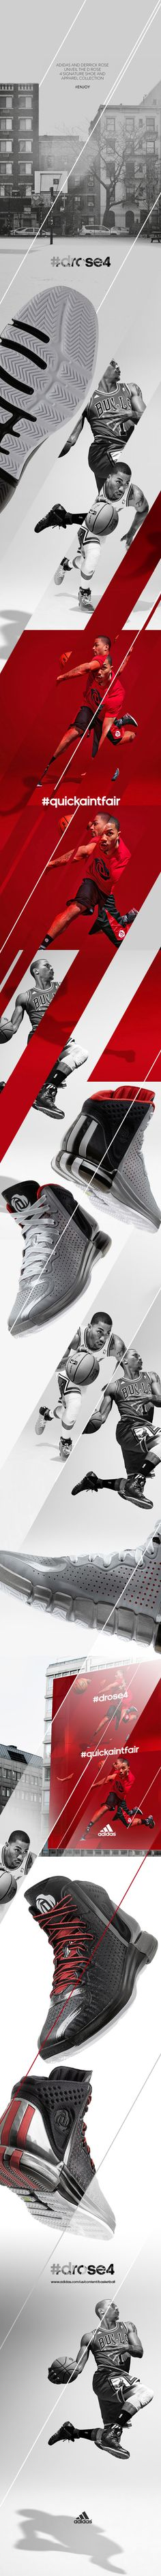 Adidas and Derrick Rose unveil the D Rose 4 signature shoe and apparel collection - this is my personal intake for a Kuwait based client. The D rose line is based on Derrick's distinct on and off-court personalities. #enjoykey visual for press in دولة ا…